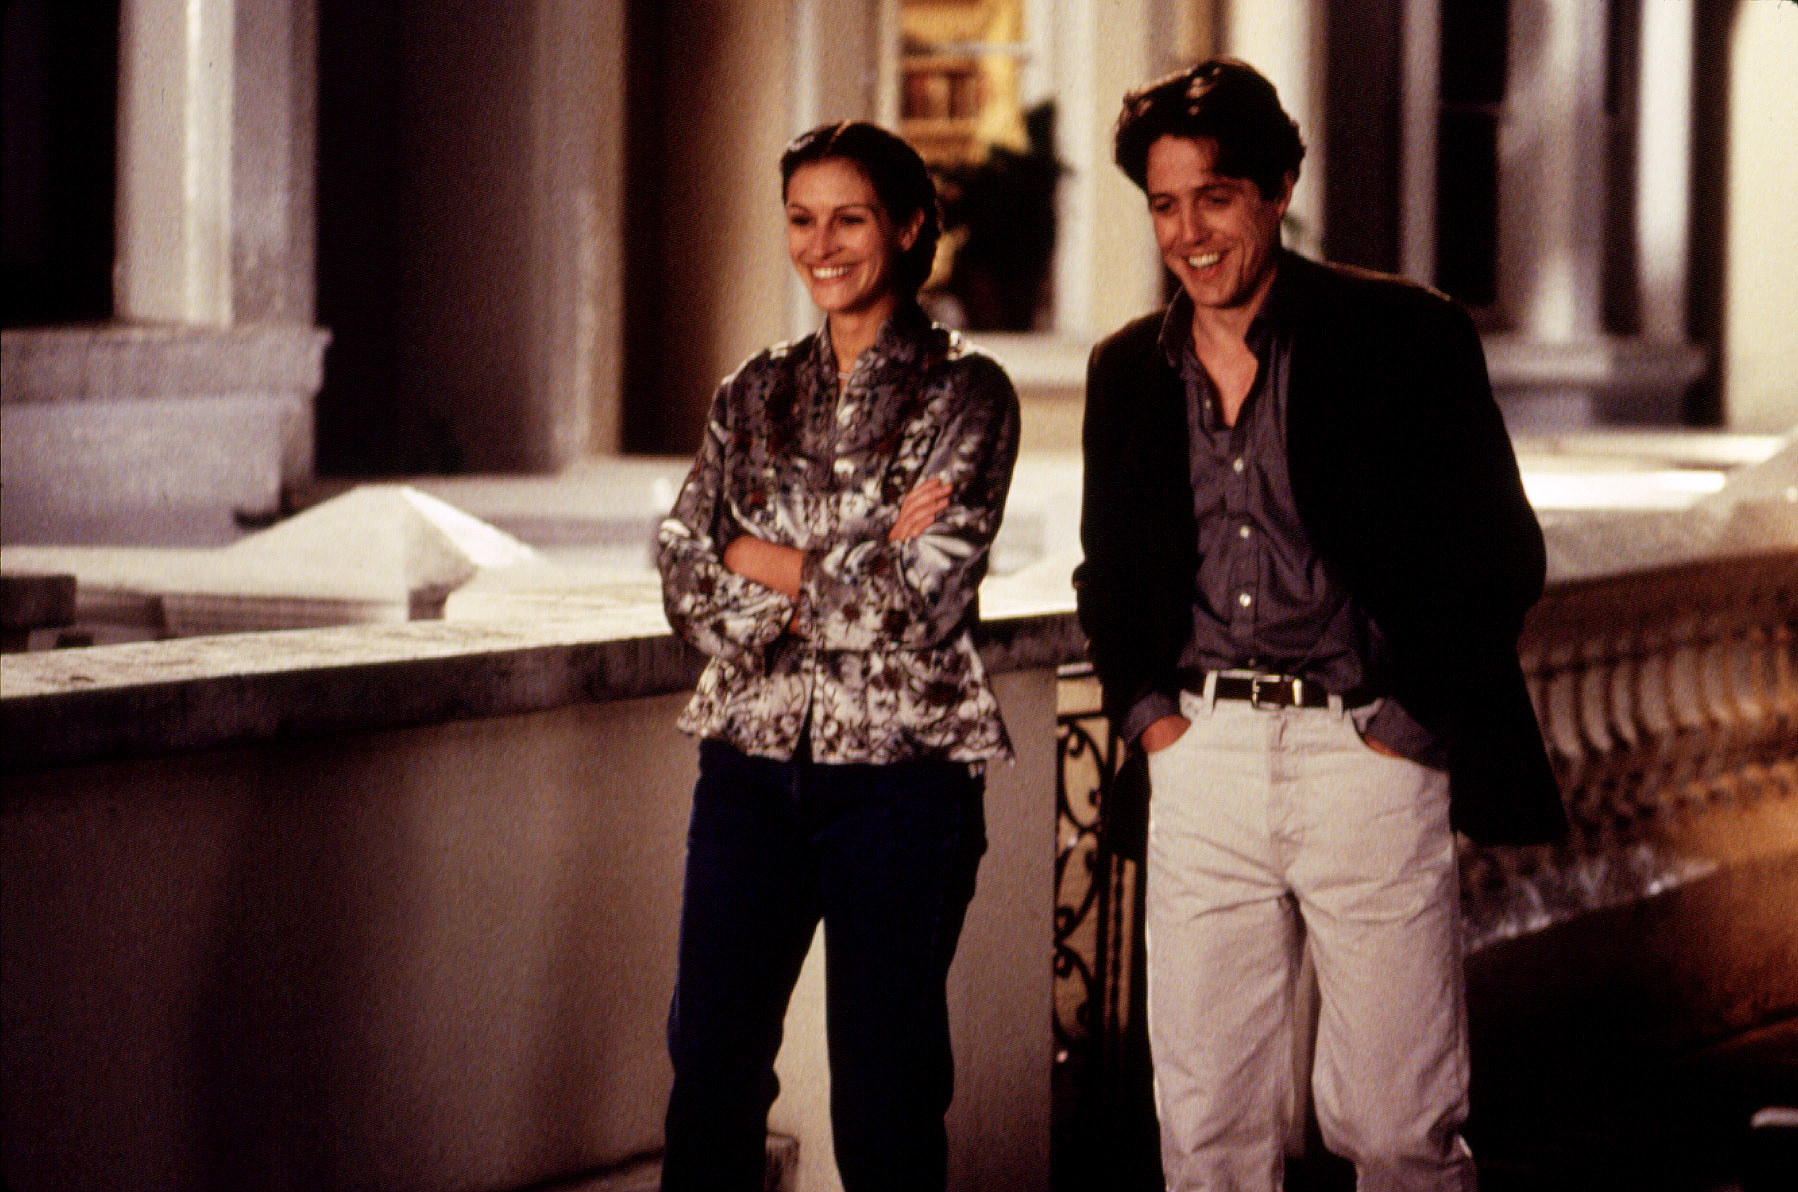 Hugh Grant and Julia Roberts' characters walk and smile together